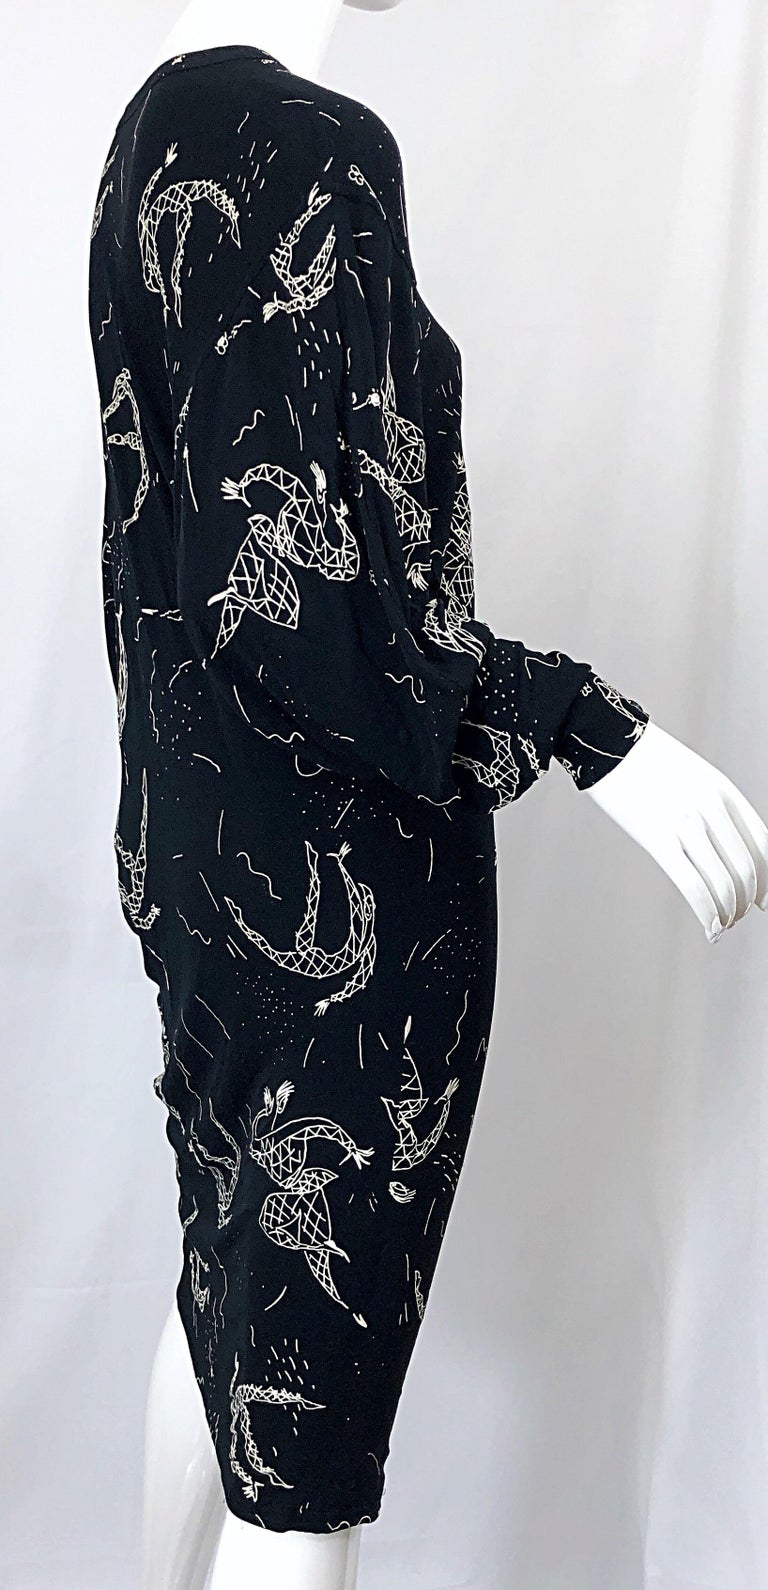 Amen Wardy 1980s Hand Painted Novelty Harlequin Print Black and White 80s Dress For Sale 4